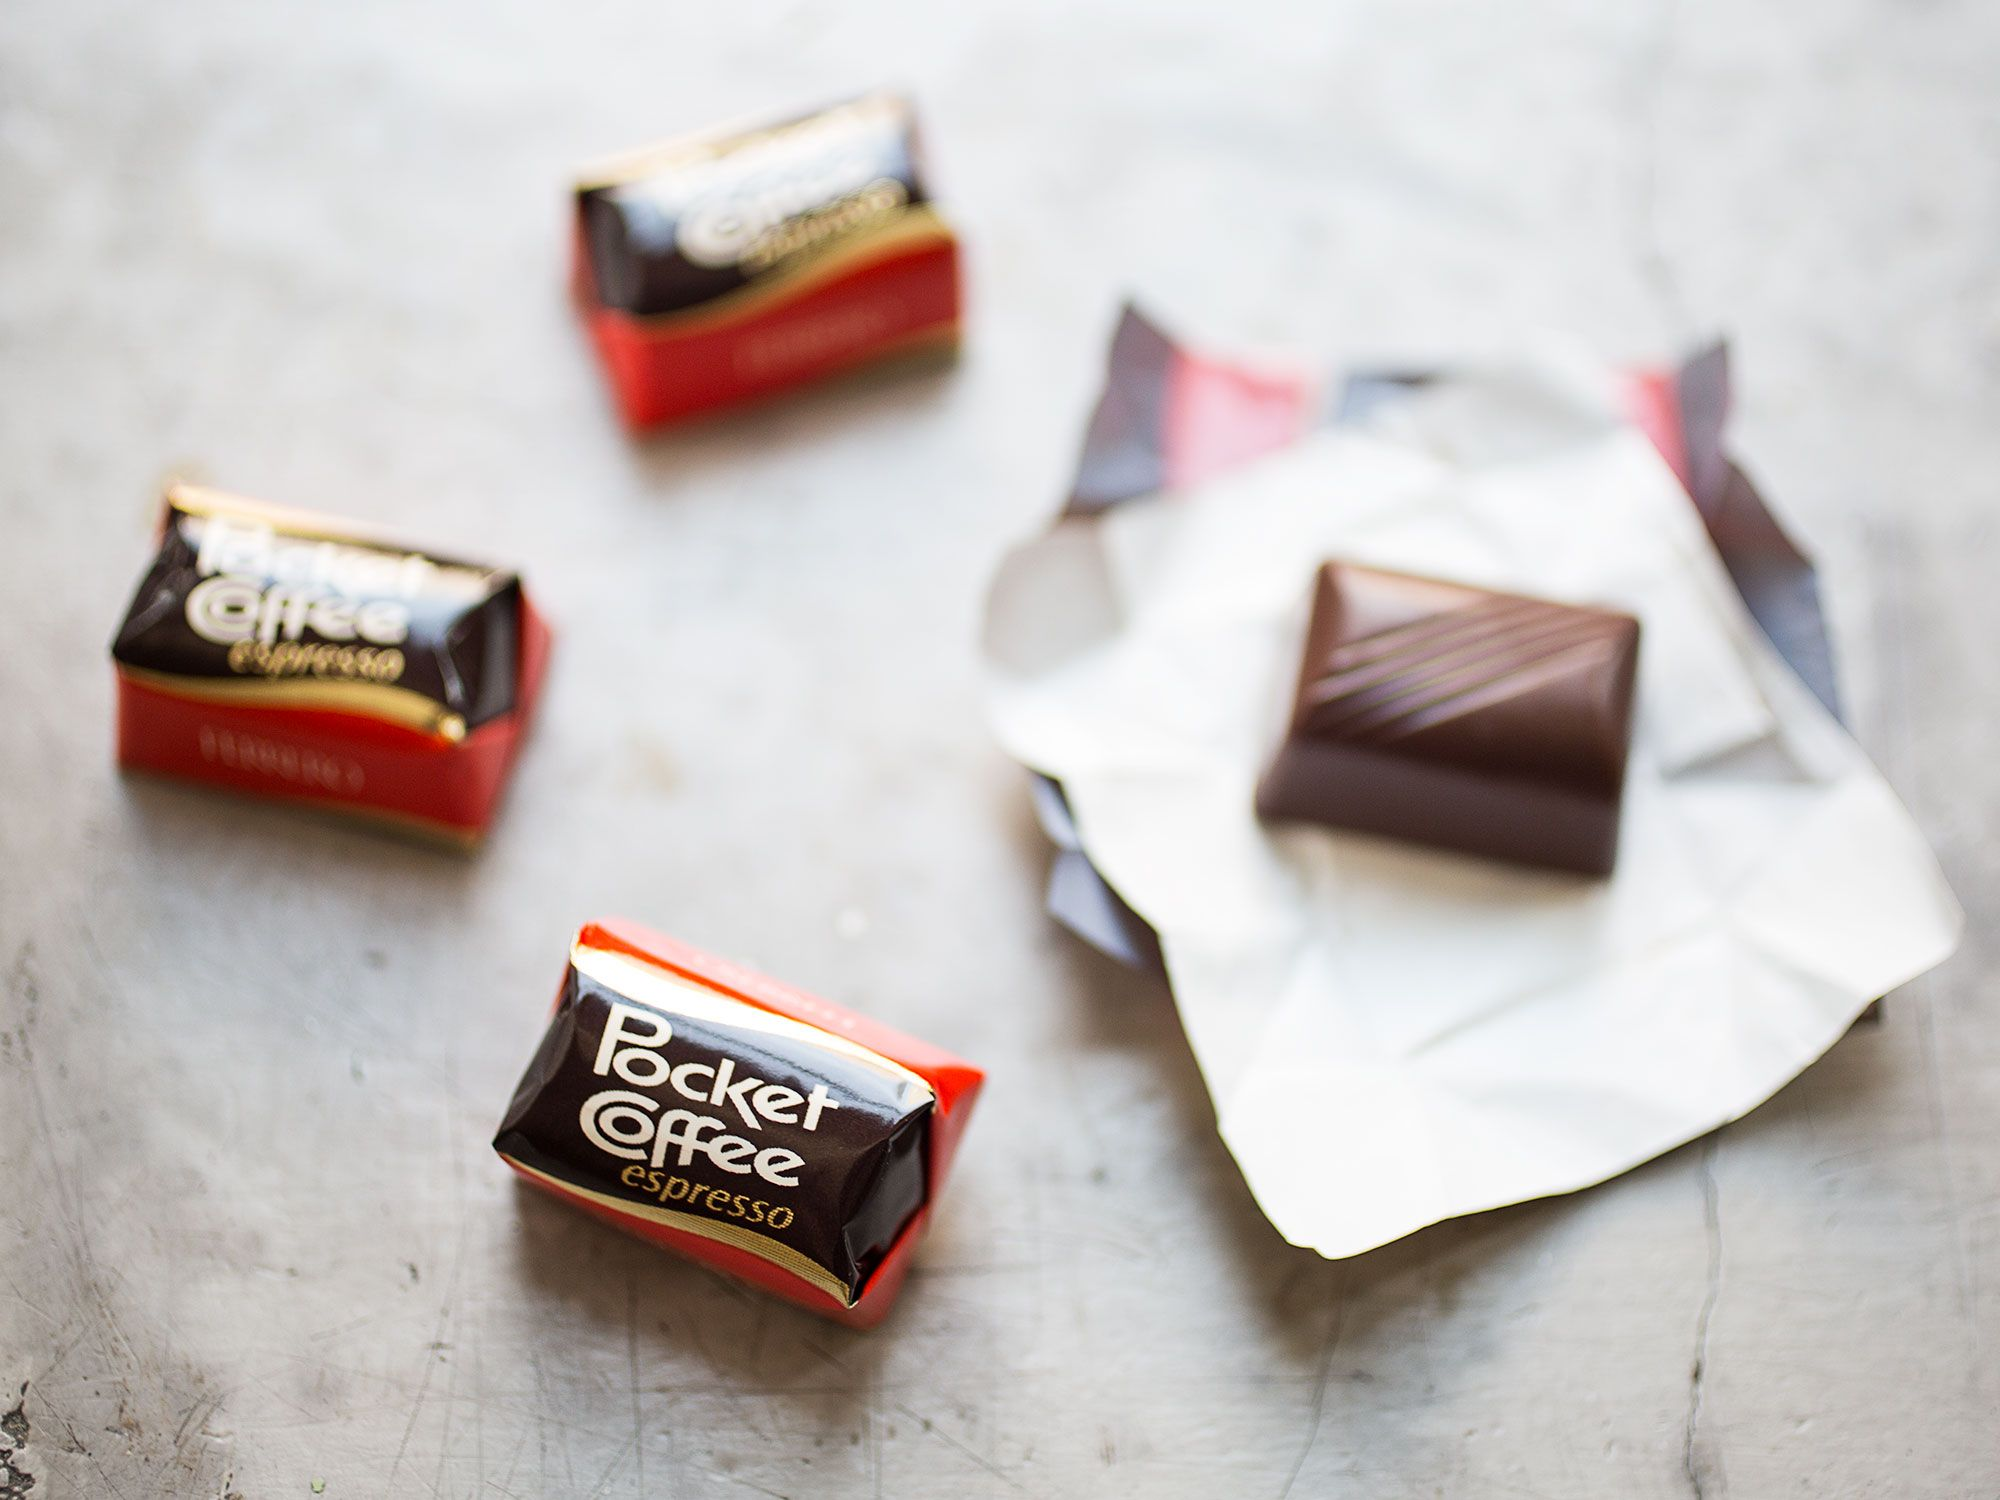 Pocket coffee: because sometimes you want your caffeine to be candy.